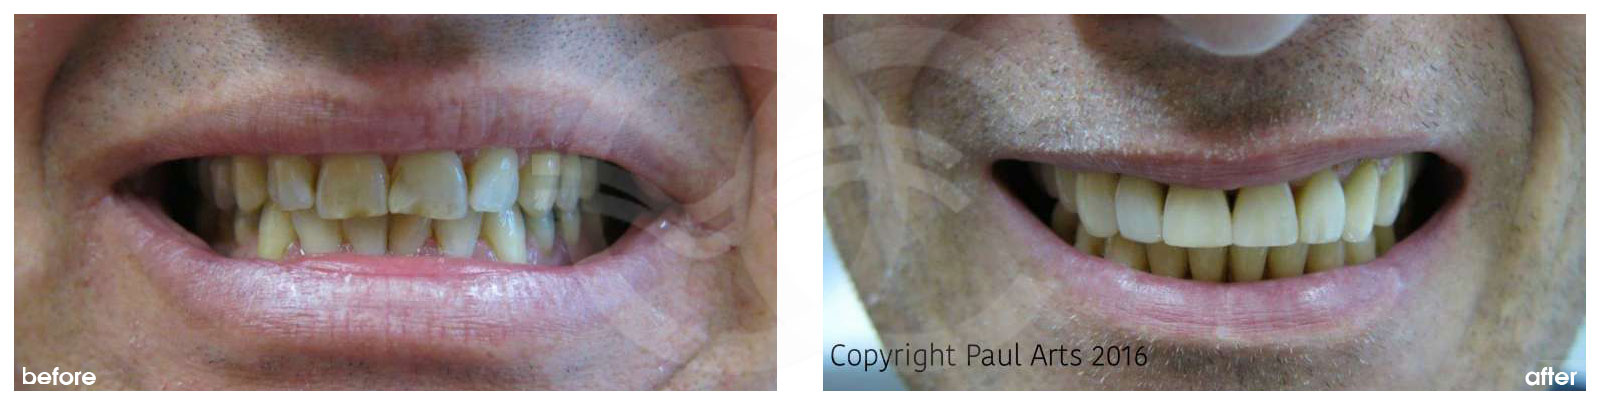 Cosmetic Dentistry Before After Discolored Chipped Teeth Treated. Photo frontal Ocean Clinic Marbella Spain